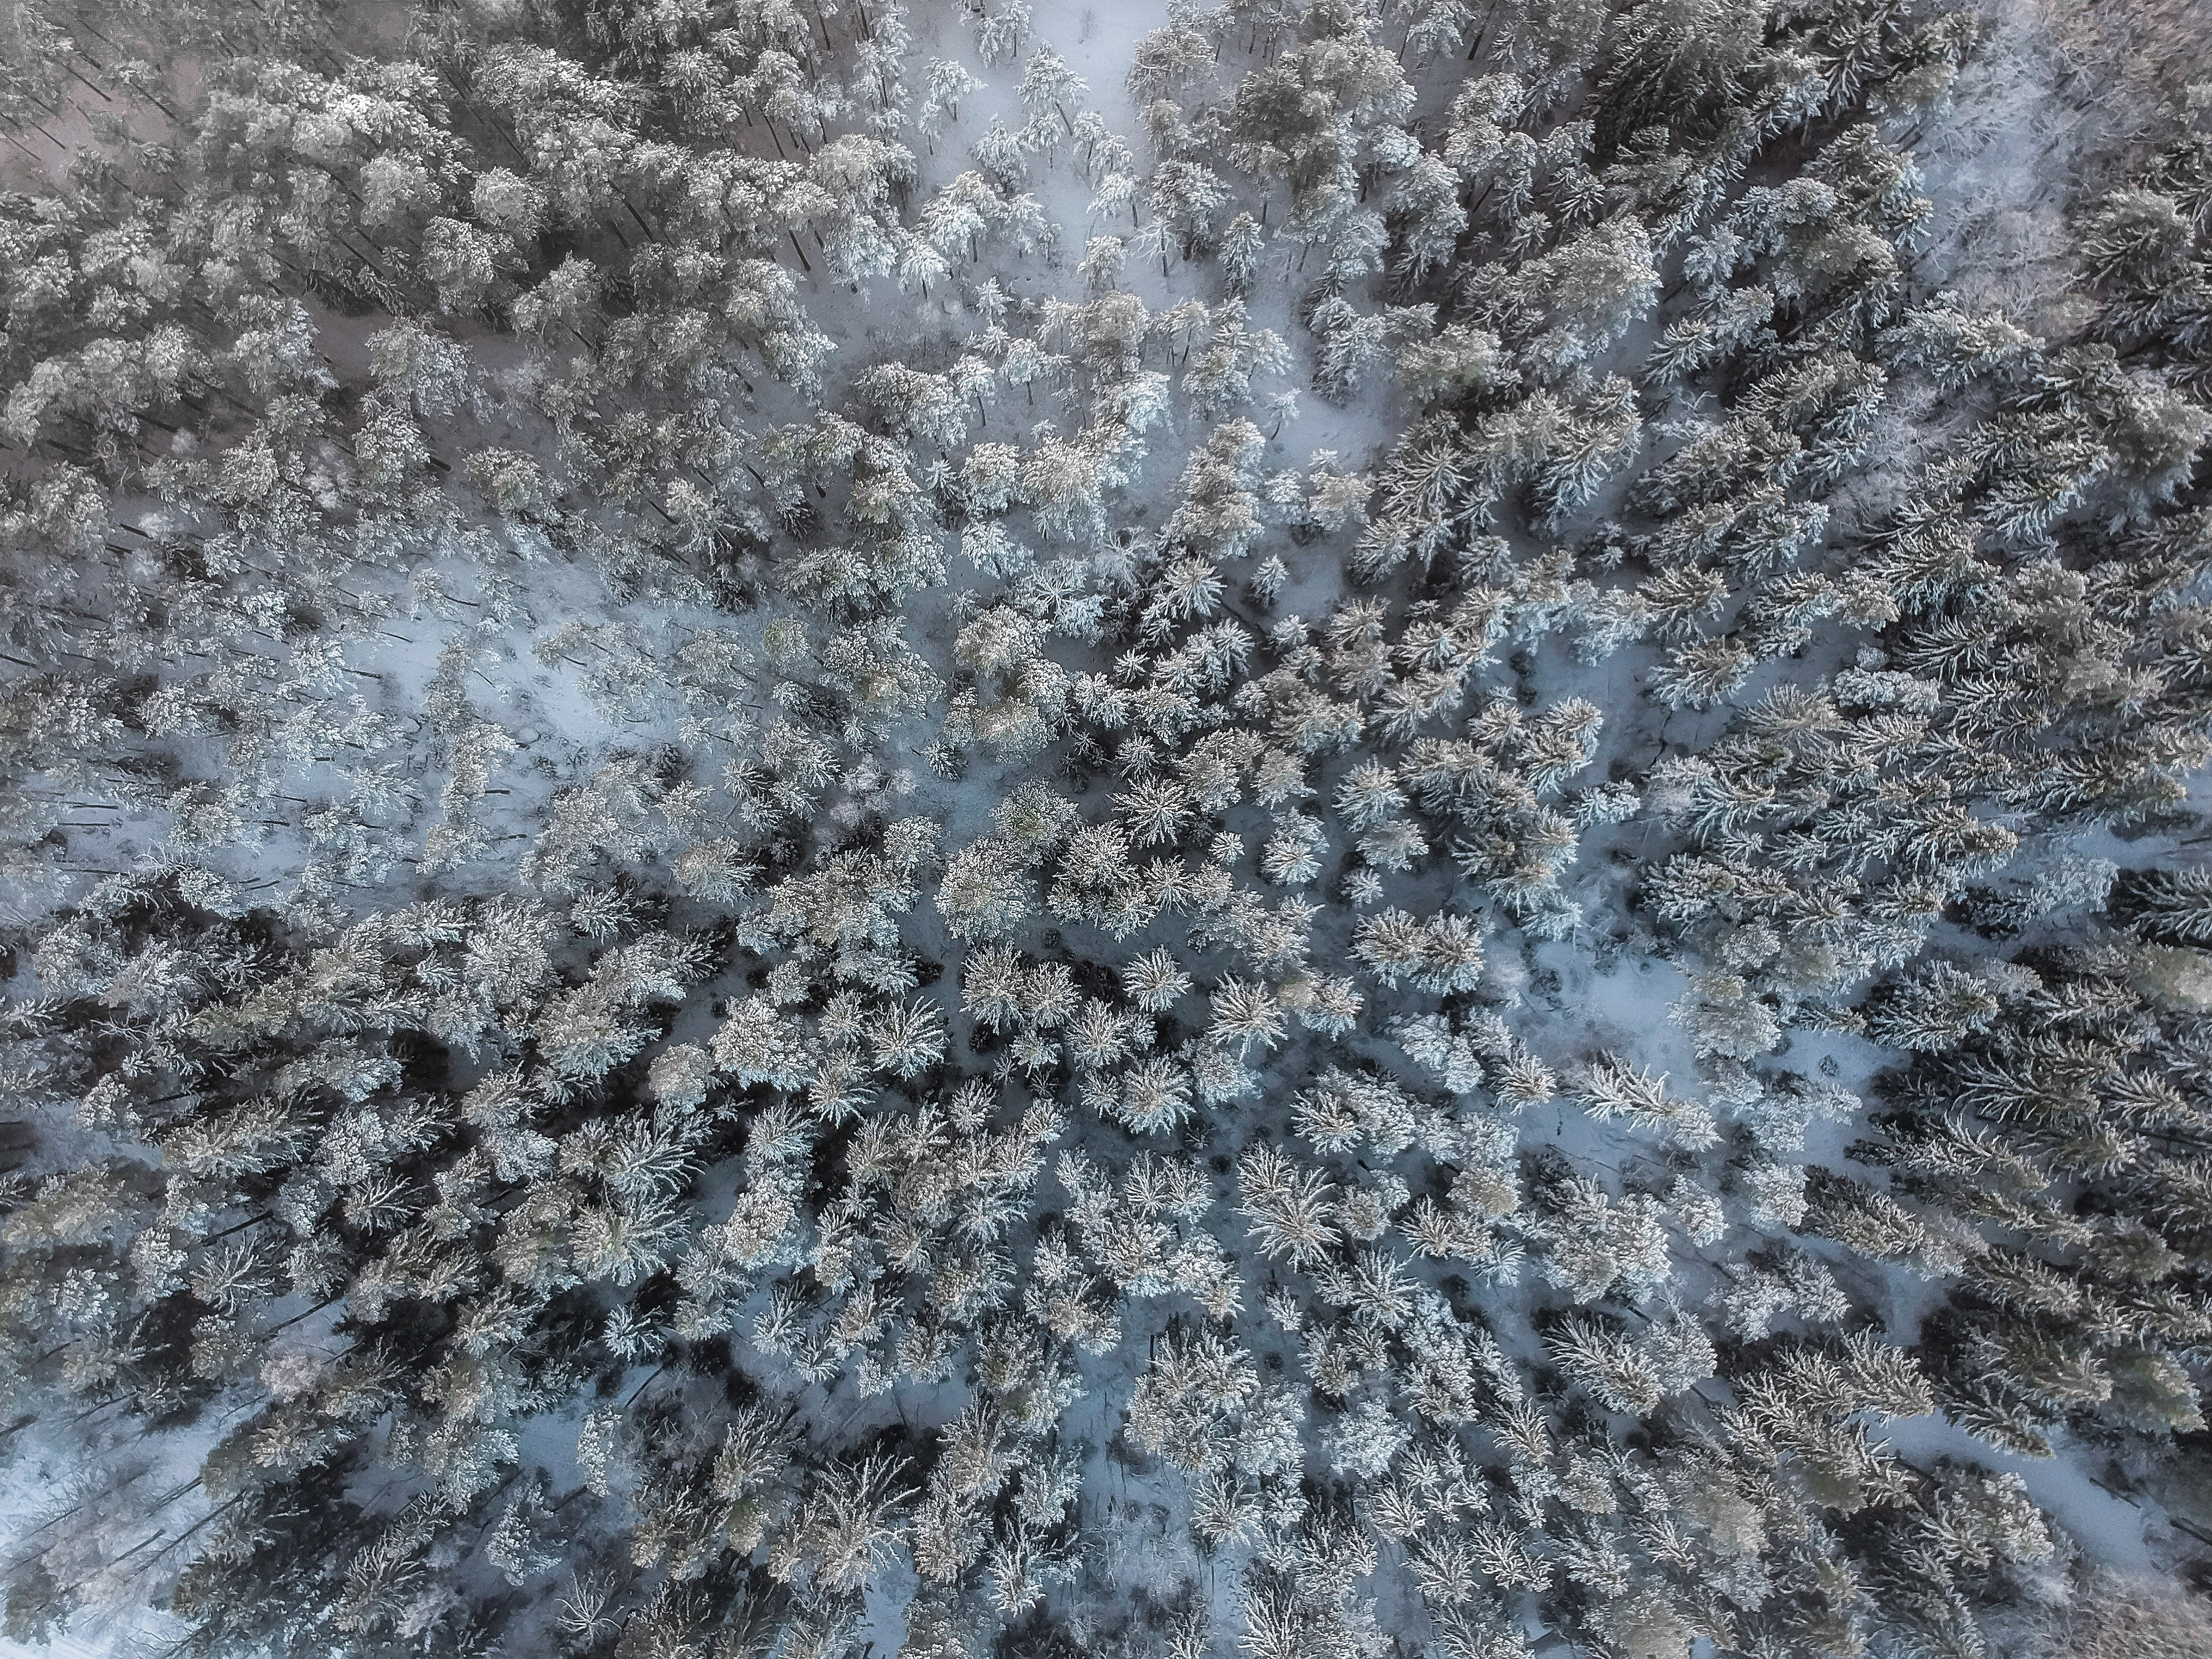 bird's eye view of forest